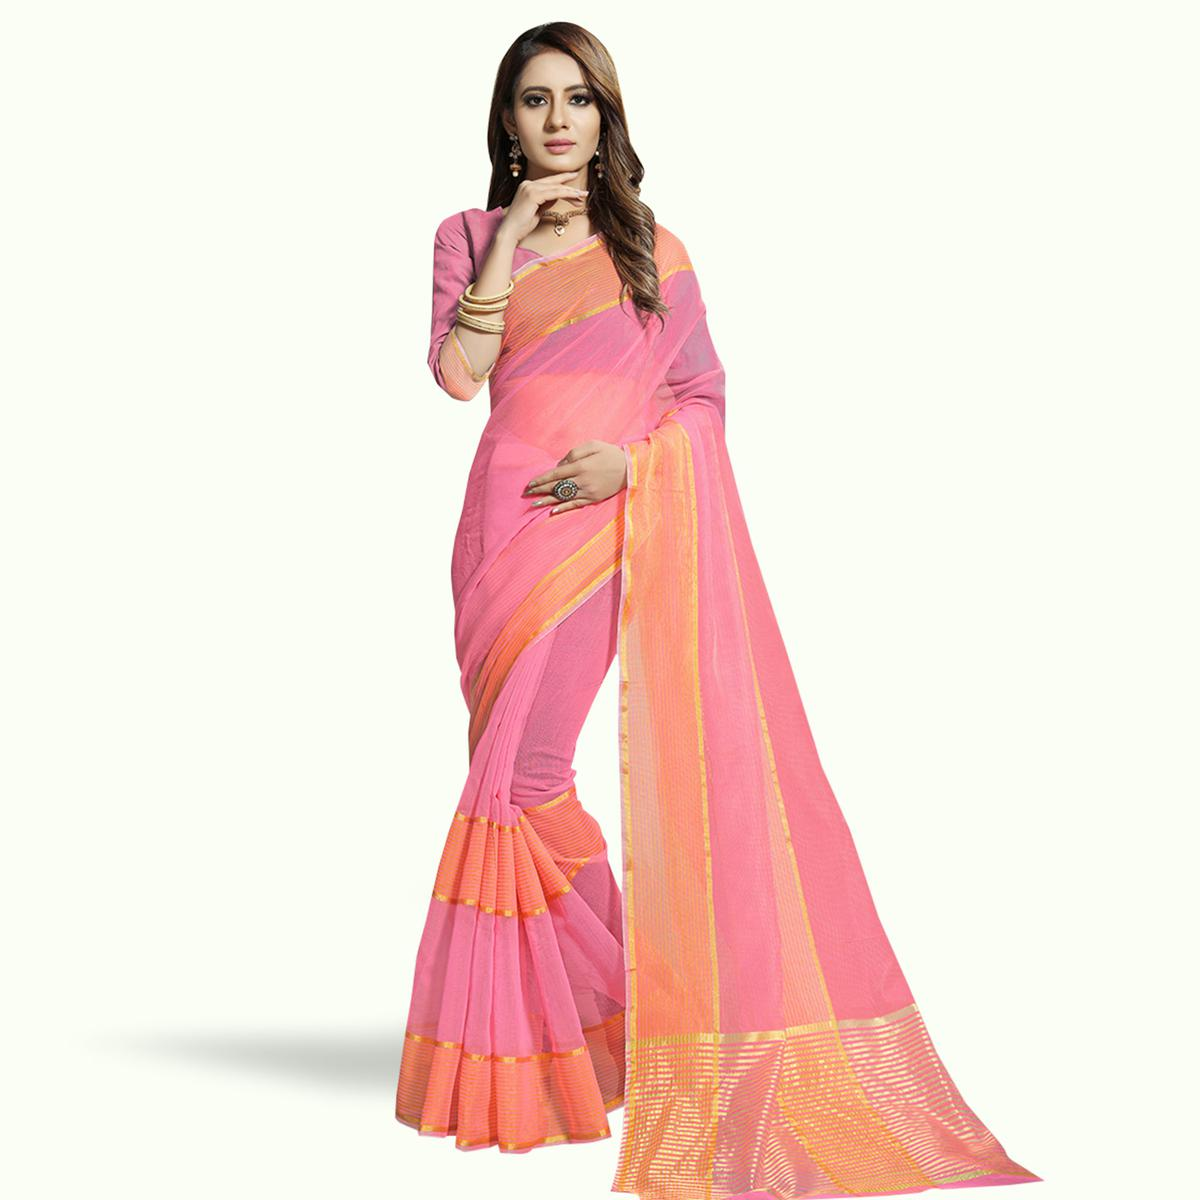 Delightful Pink Colored Festive Wear Woven Chanderi Silk Saree